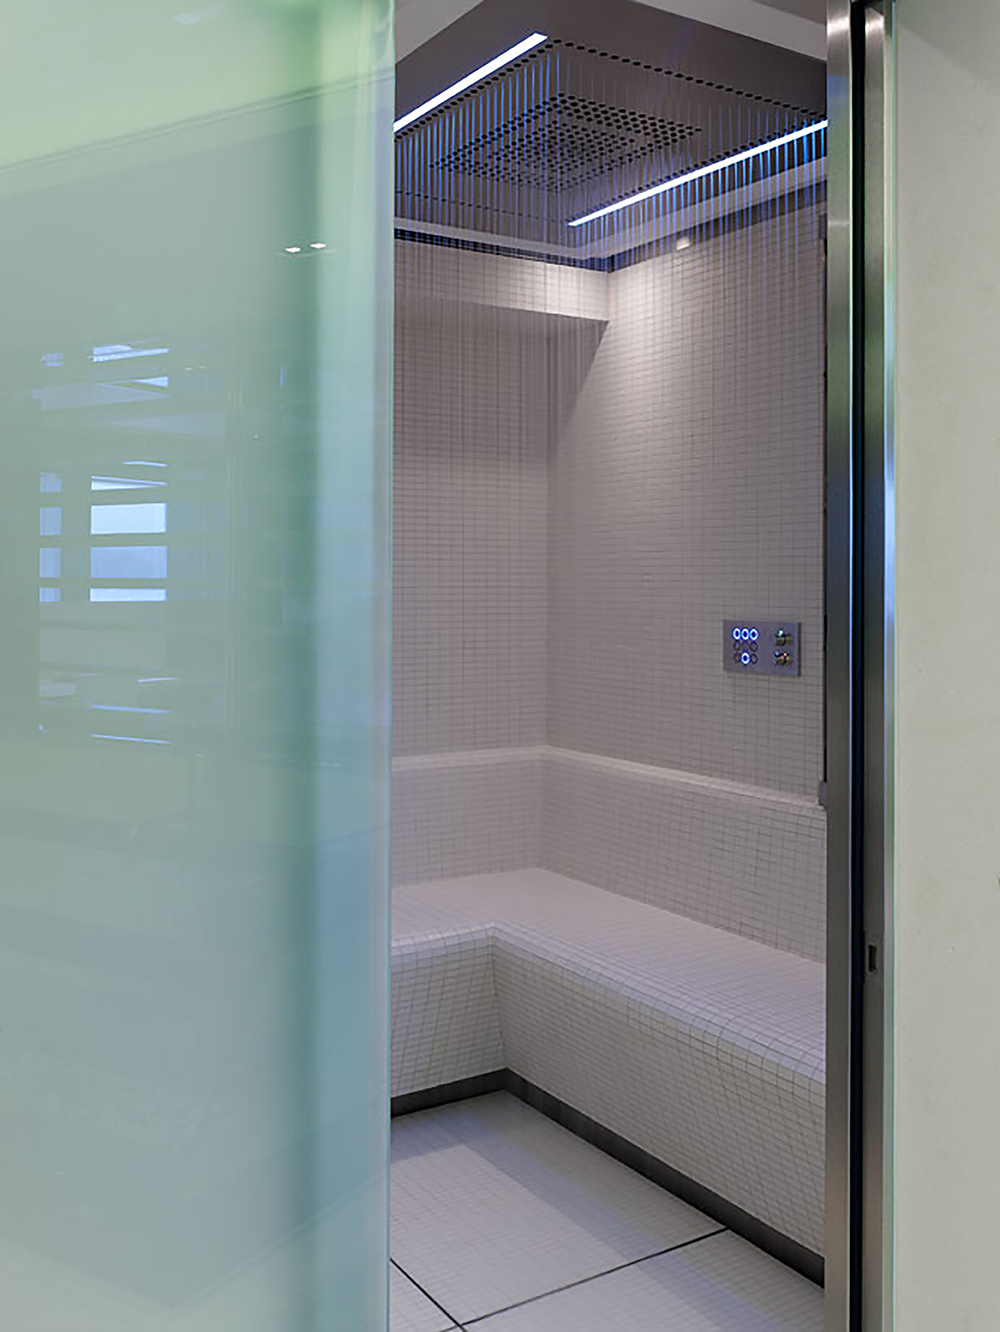 Hot and cold rain shower with pure white mosaic bath room wall bench and wall. The floor is covered with wide scale white tiles.